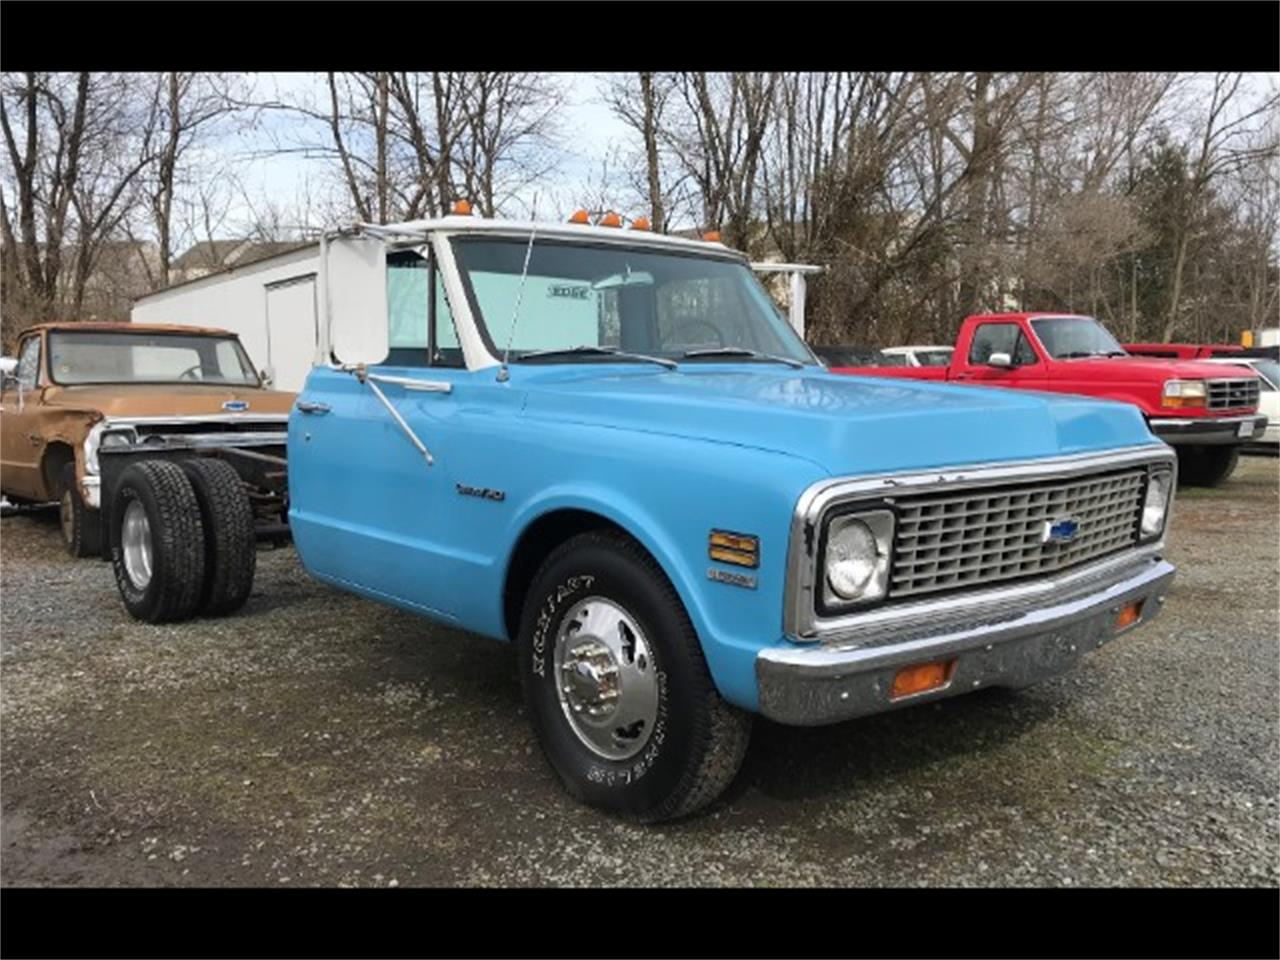 1971 Chevrolet 1 Ton Truck (CC-1147763) for sale in Harpers Ferry, West Virginia